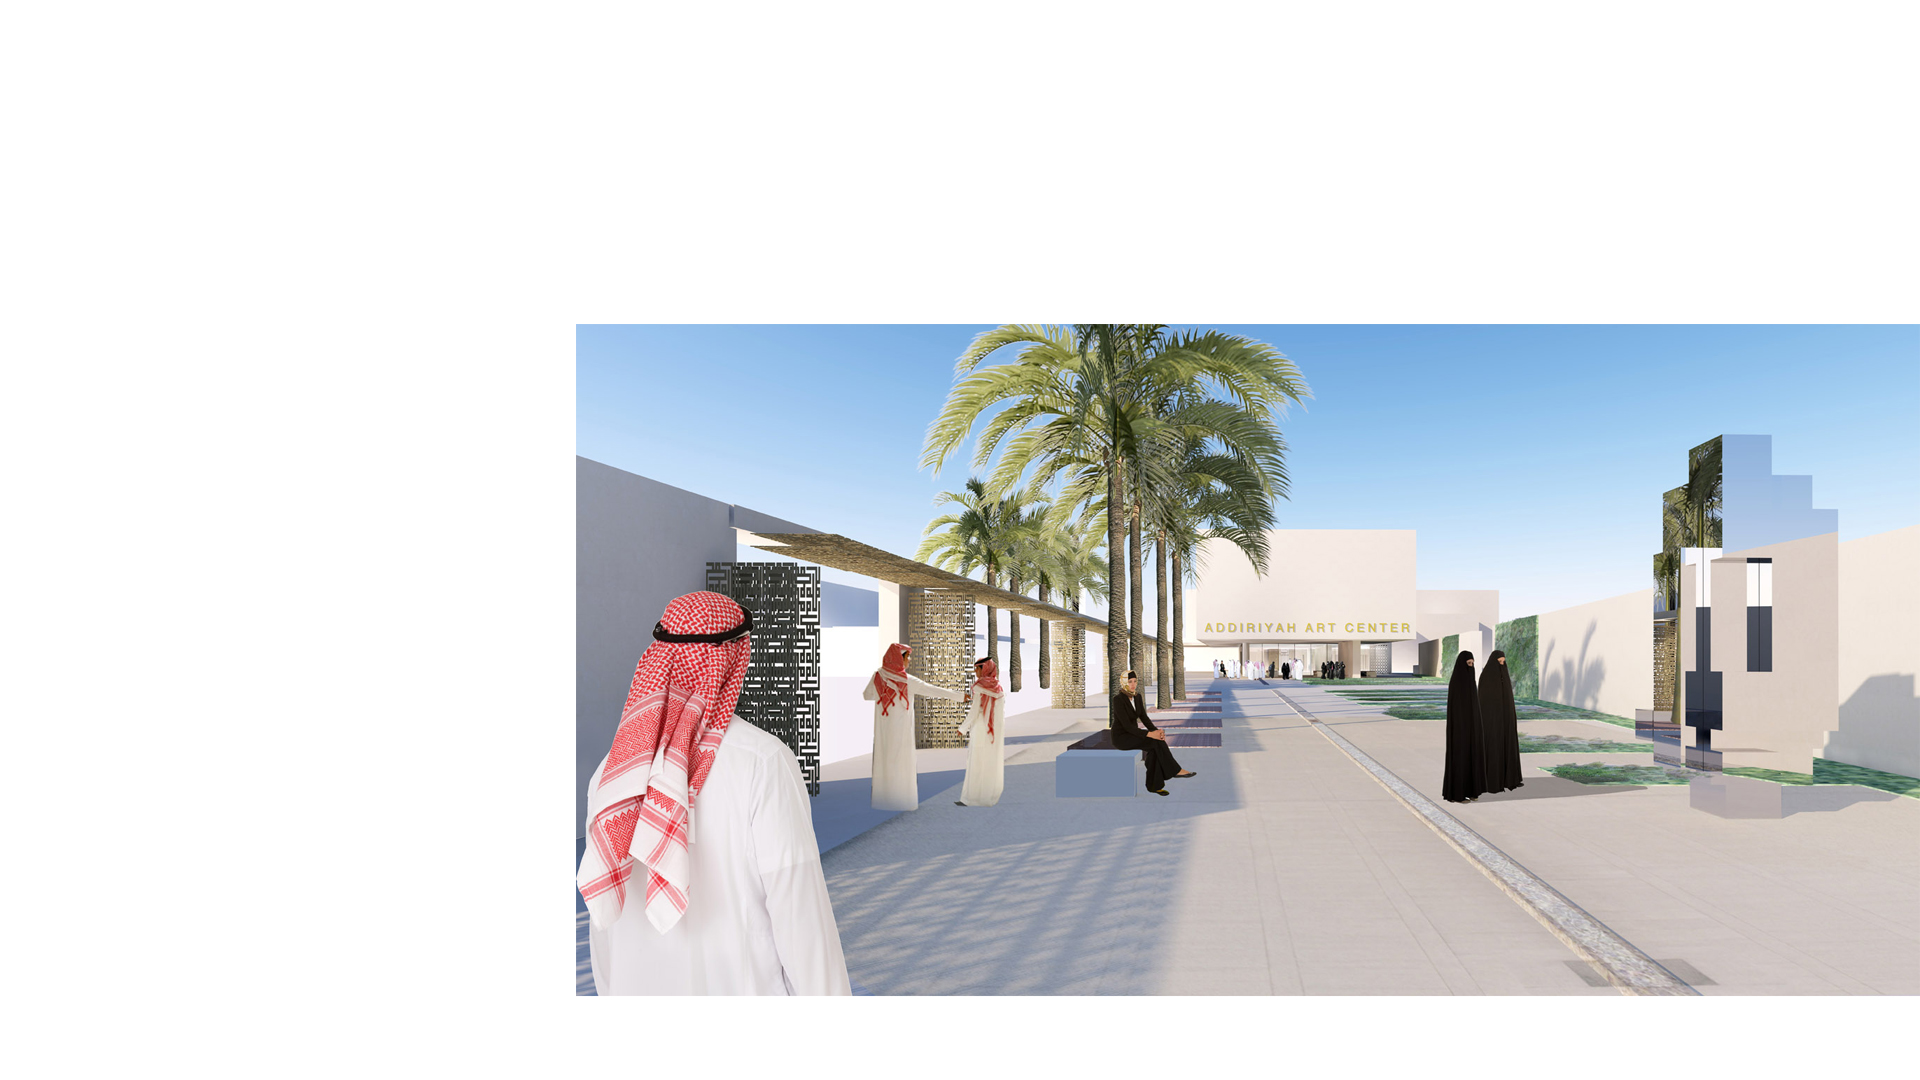 3D composite render of the sculpture garden at the Addiriyah Arts Centre and Teaching Academy, Riyadh